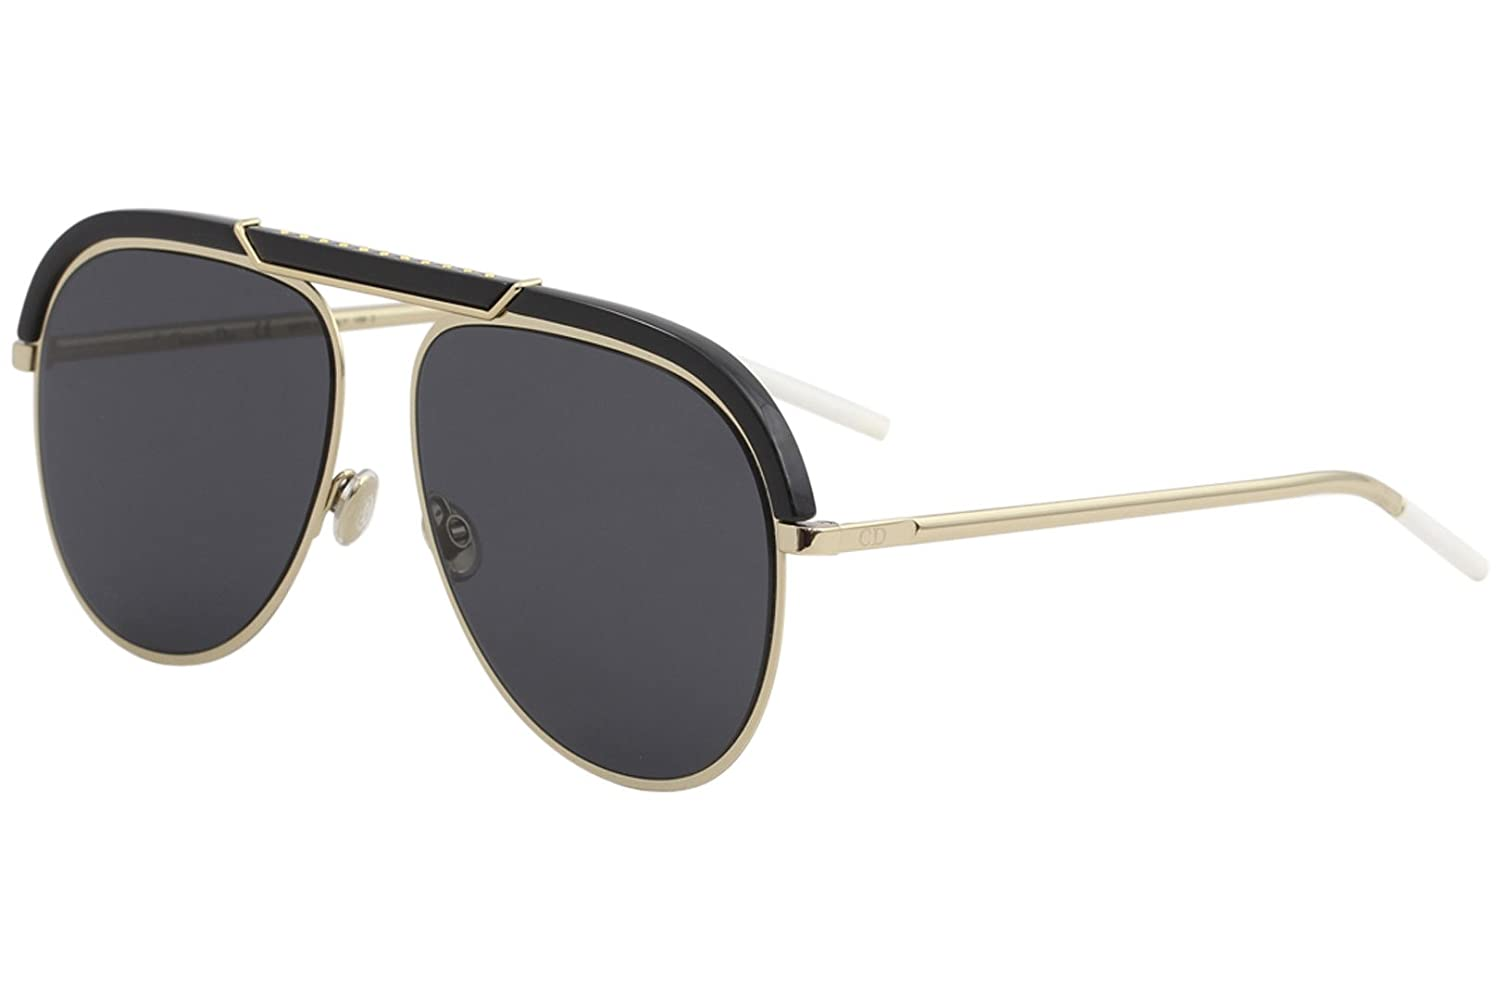 474b9c307744f Amazon.com  Christian Dior DIORDESERTIC 02M2 2K Black Gold Aviator  Sunglasses for  Clothing